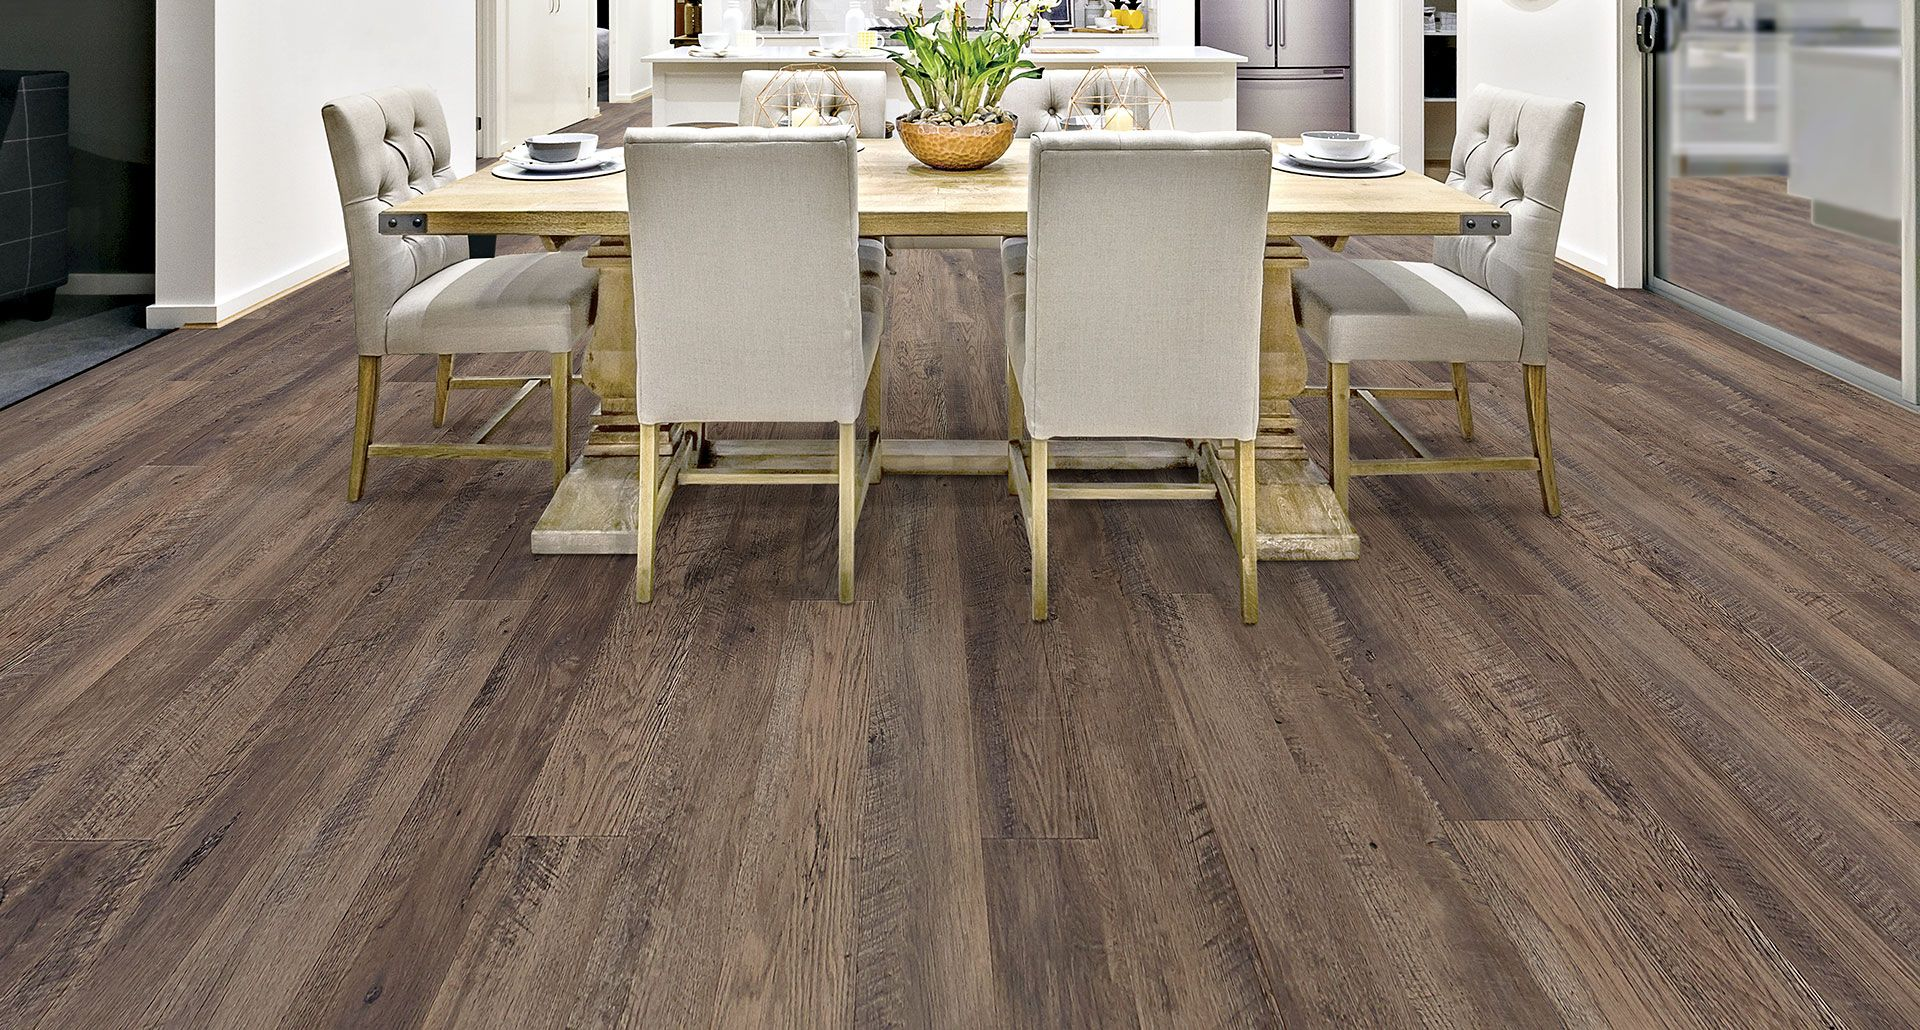 Pergo Portfolio Wetprotect Huntington Oak Laminate Flooring